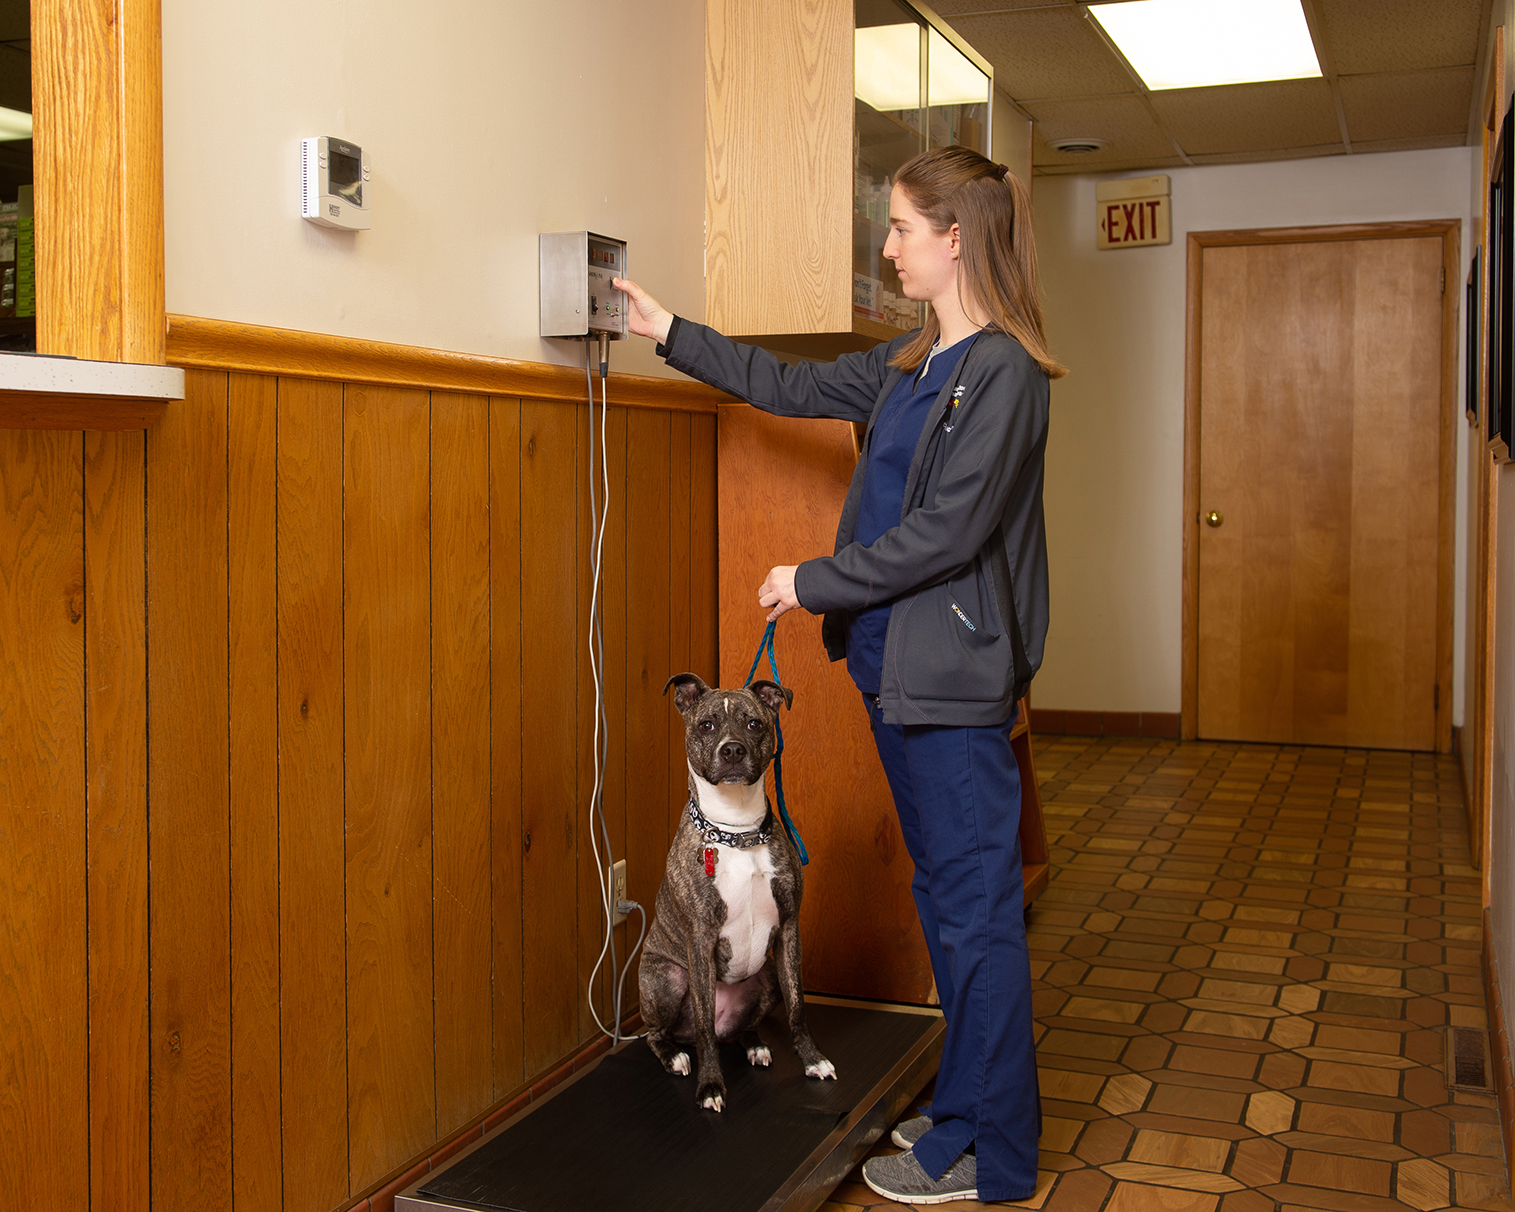 Stephanie Schott weighing a dog on a scale